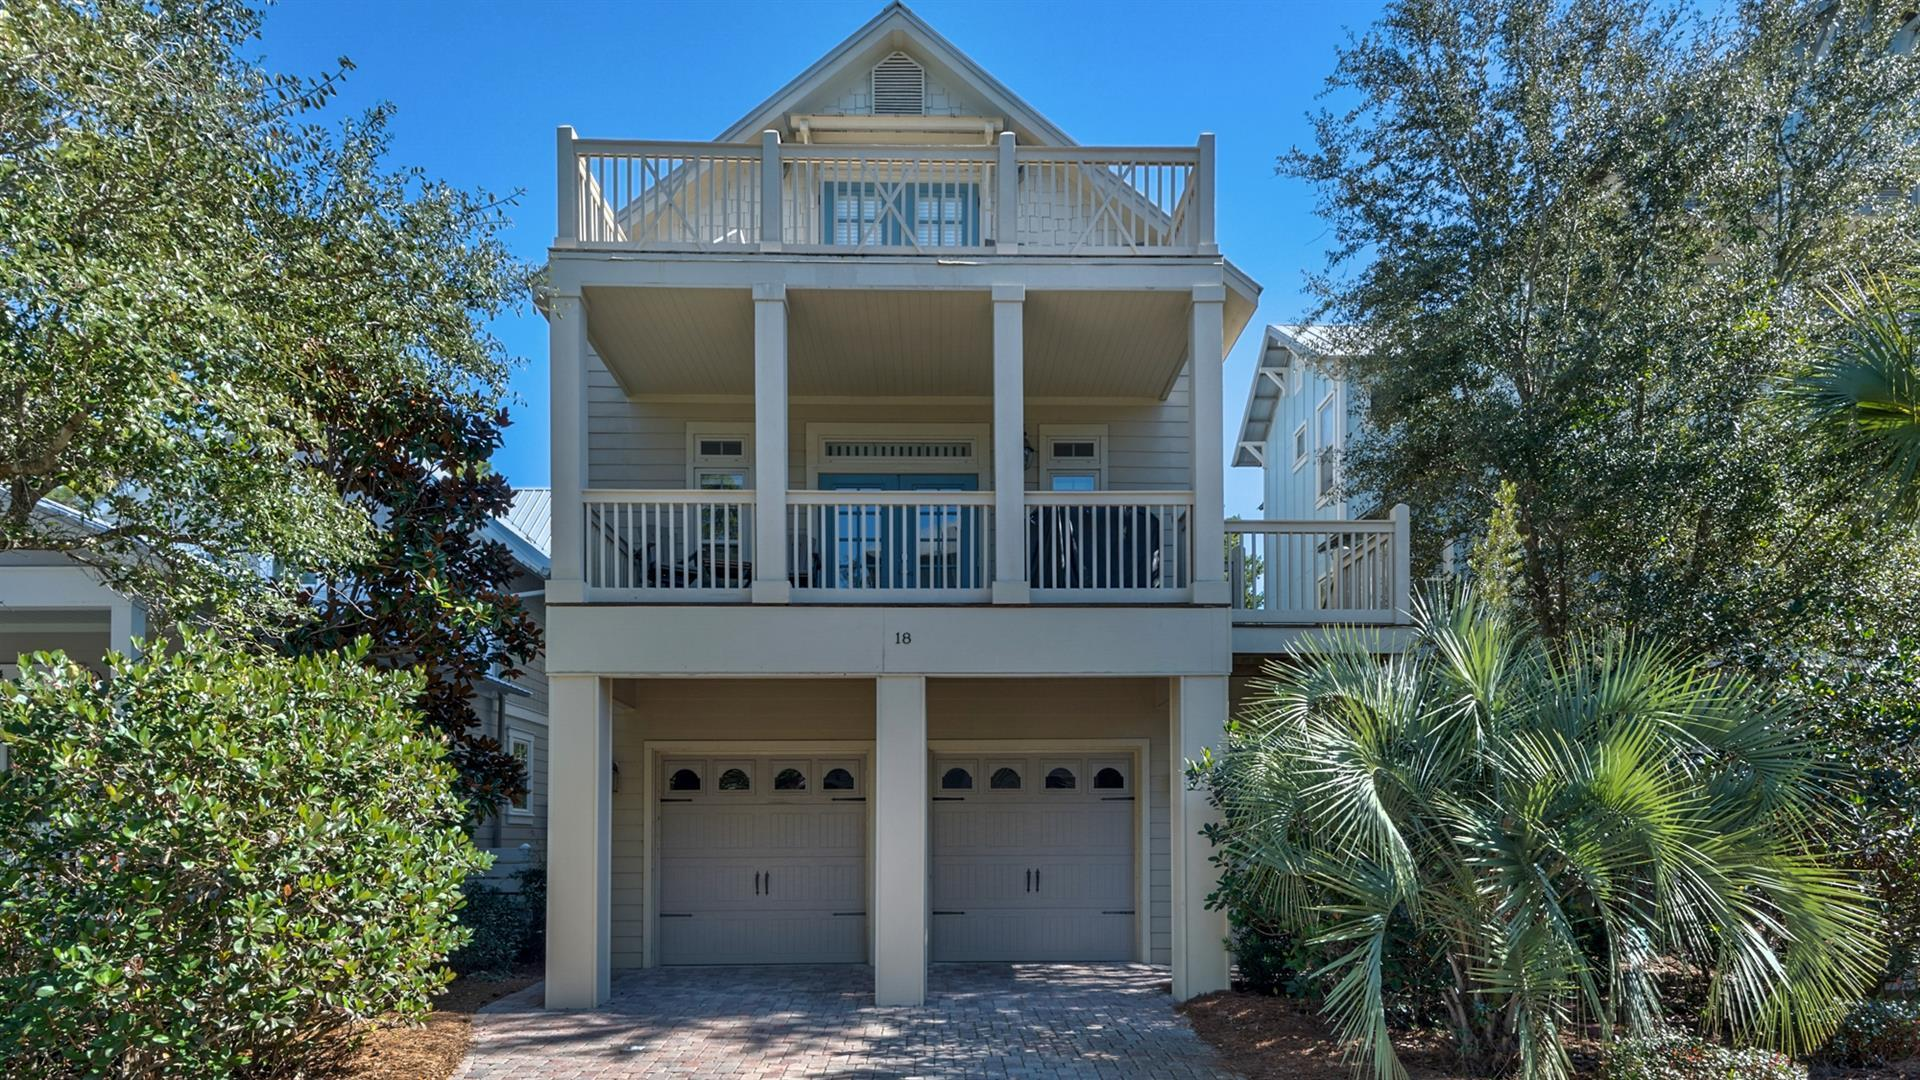 Beautiful home located south of 30A in the quiet  community of Cottages at Eastern Lake, this 4BR/3.5BA home is perfectly suited as a full-time residence, second home or as a rental property.  Highlights of this home are two large private porches, oversized 4 car garage with additional room for a golf cart (currently equipped as a game room with ping-pong table and pool table), four spacious bedrooms, stainless appliances, crown molding, and large welcoming living area.  Fresh paint, new flooring throughout home.  New furniture in all the bedrooms, new shiplap on the stairs. The Cottages at Eastern Lake sits adjacent to Watersound West Beach and features palm tree lined brick paved roads and a resort style community pool.  Just a short bike ride to the beach, shops and restaurant